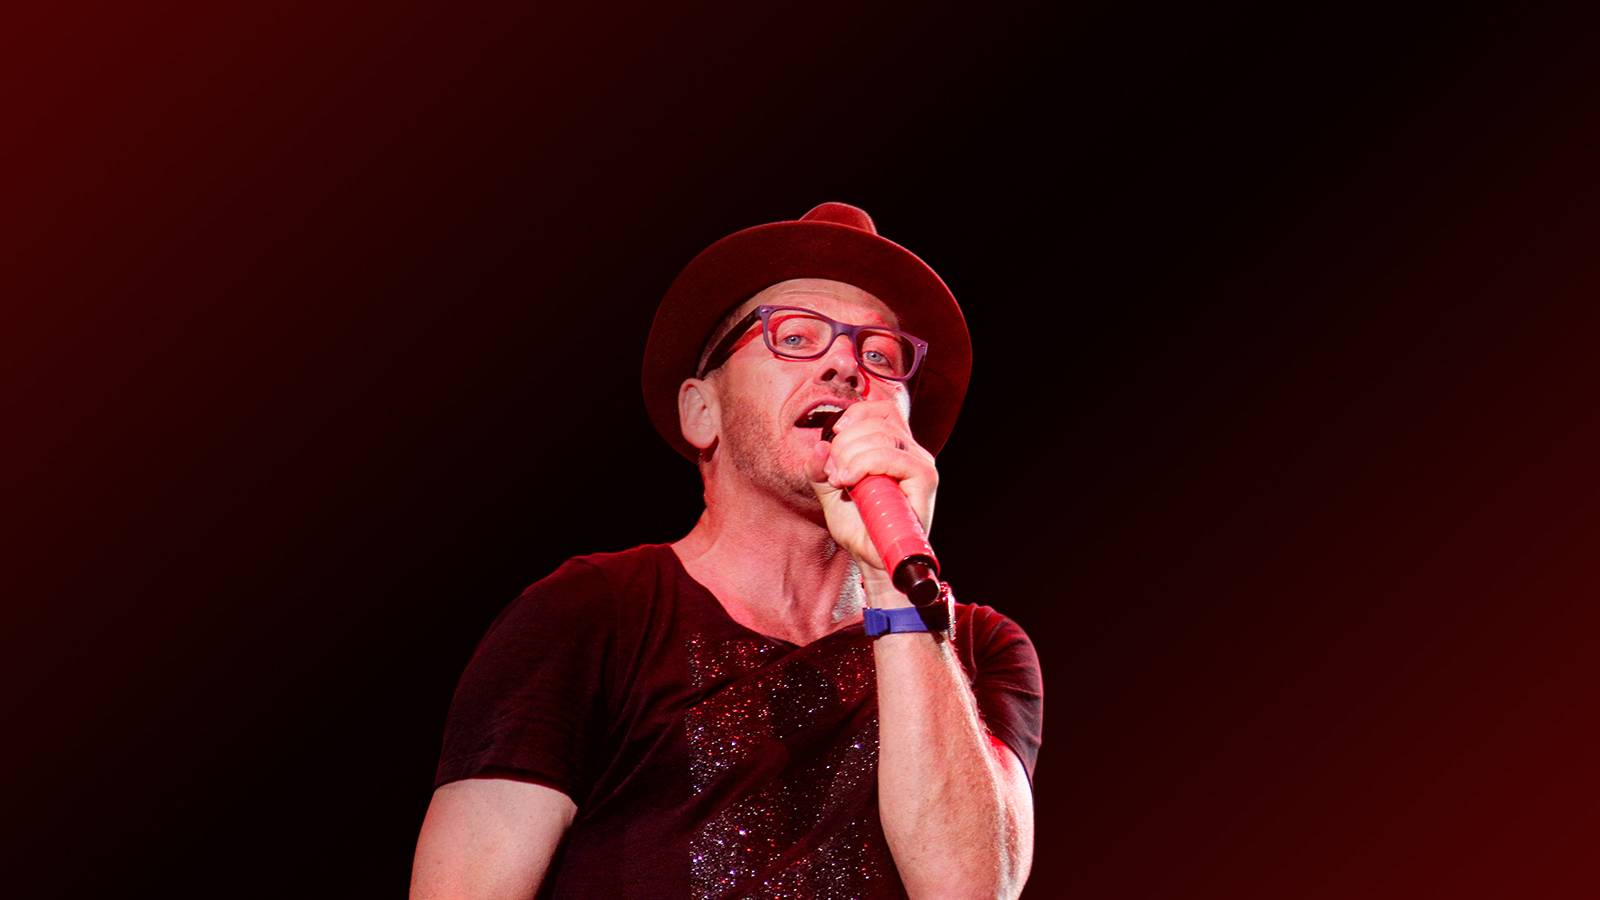 TobyMac (Rescheduled from 11/24/2019, 5/13/2020, 10/2/2020)